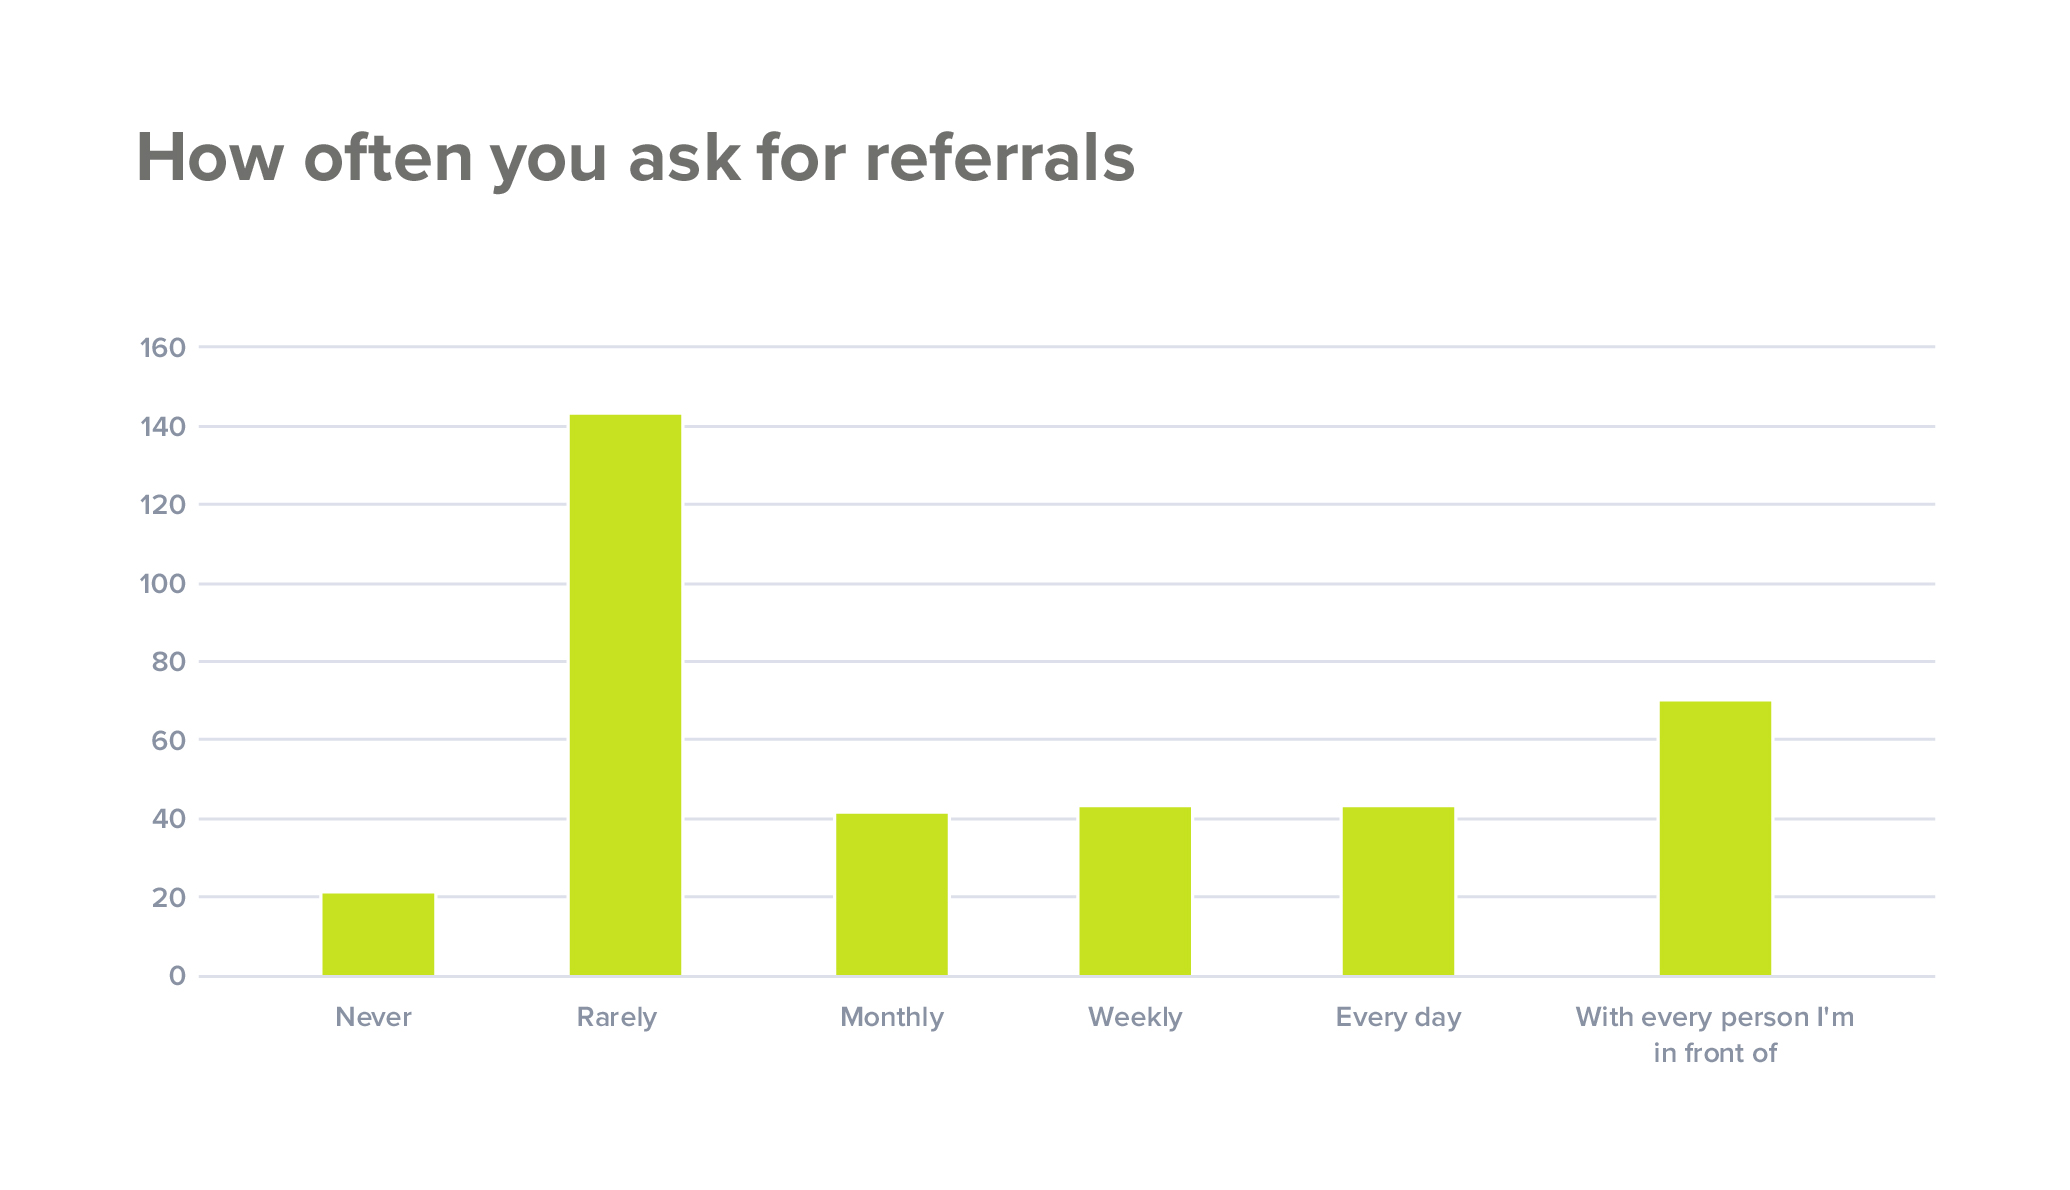 How often do sales people ask for referrals?